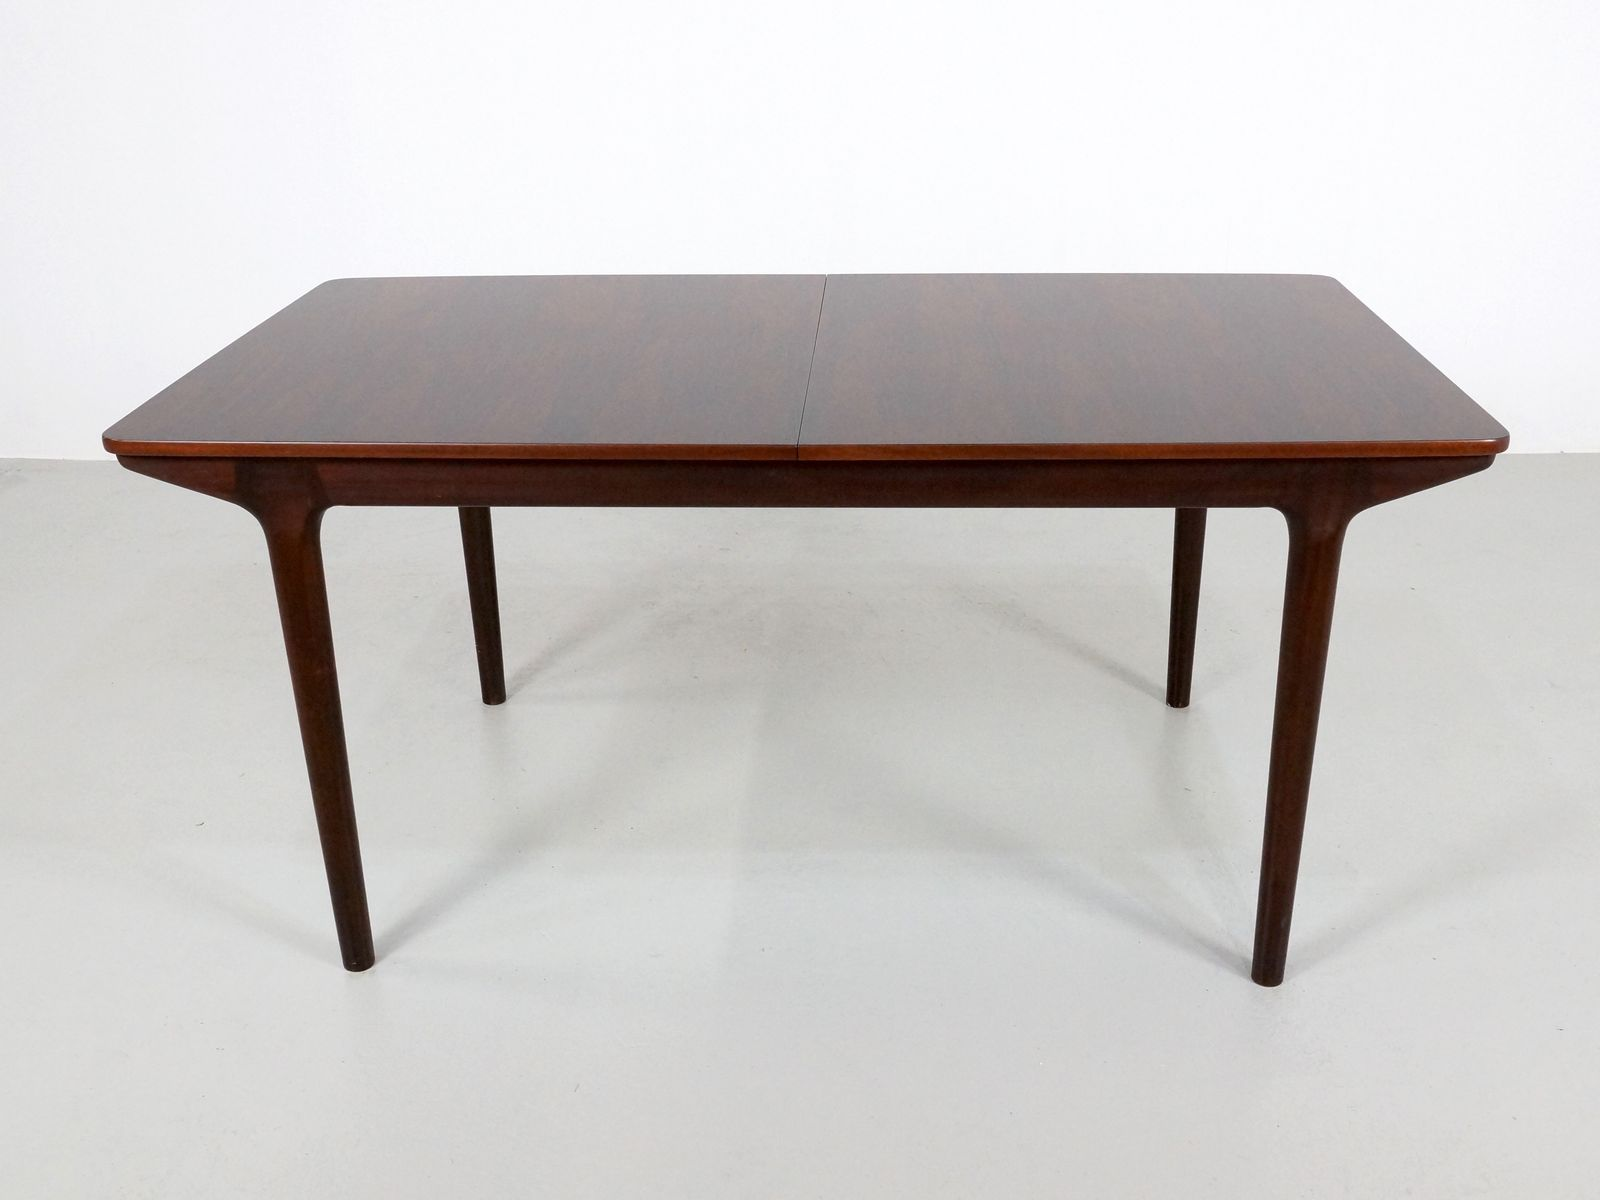 British Extendable Rosewood Dining Table from McIntosh  : british extendable rosewood dining table from mcintosh 1971 1 from www.pamono.co.uk size 1601 x 1200 jpeg 64kB